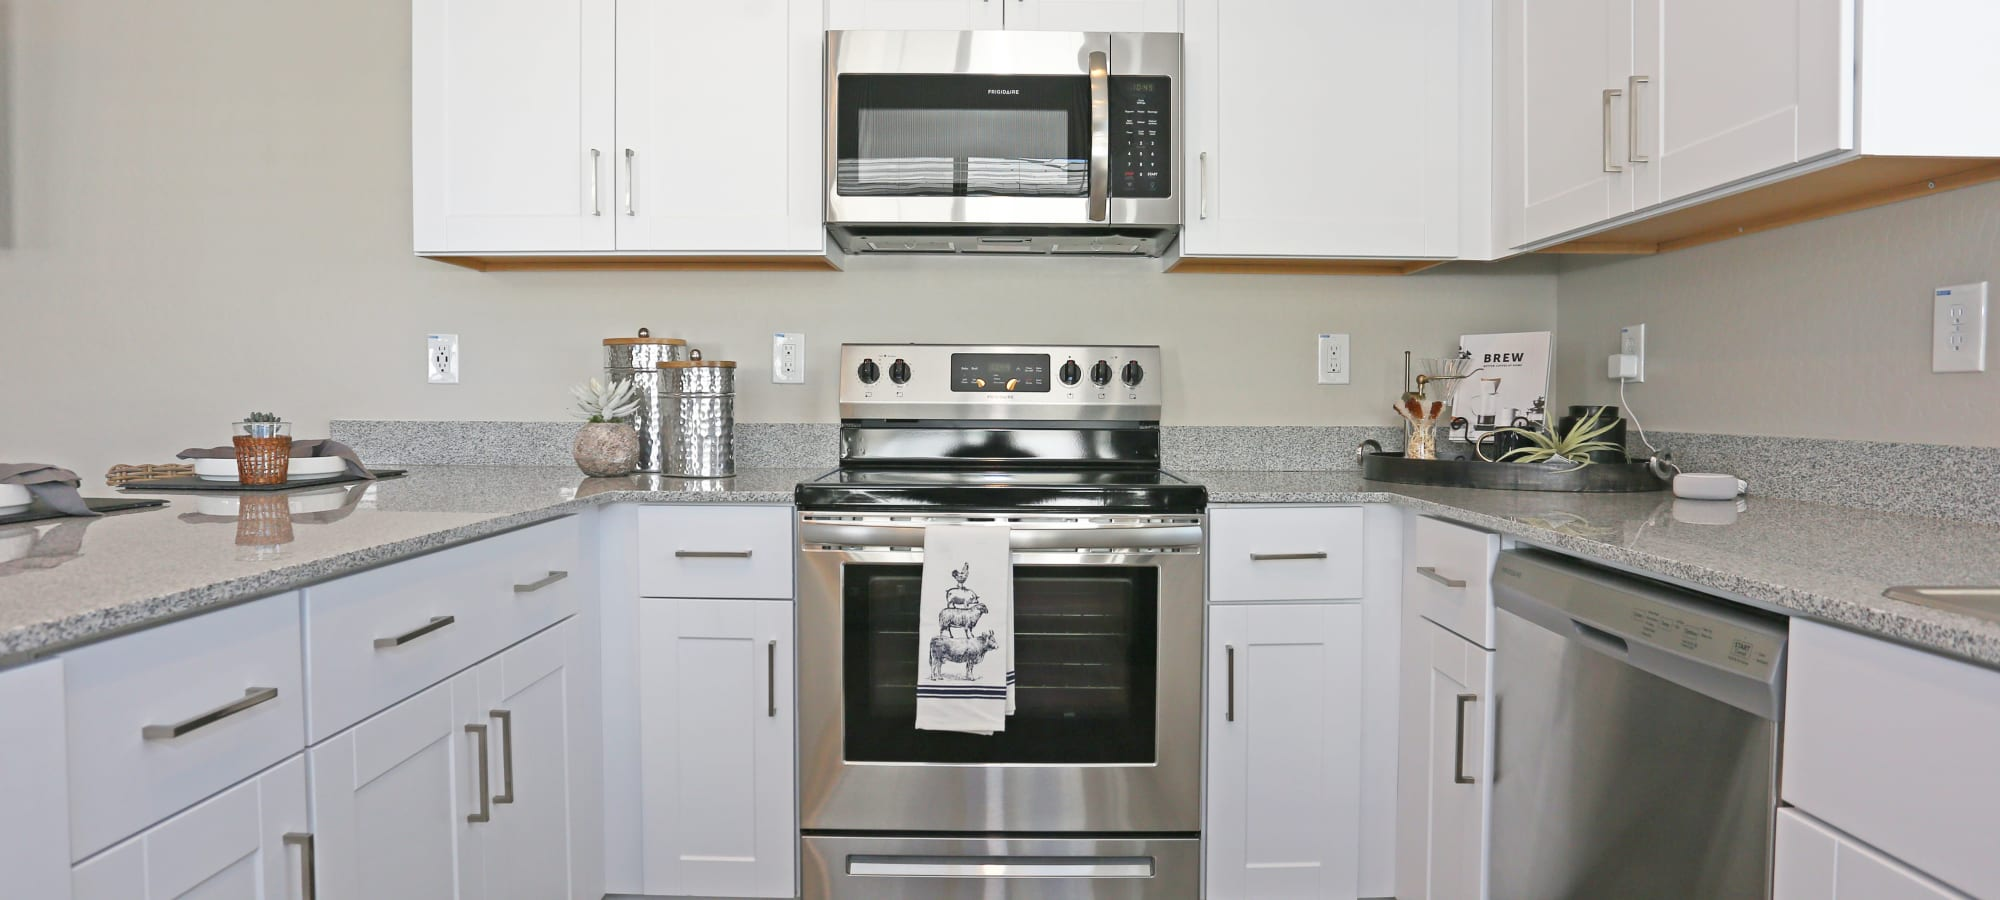 Stainless-steel appliances in a model home's kitchen at Christopher Todd Communities On Happy Valley in Peoria, Arizona